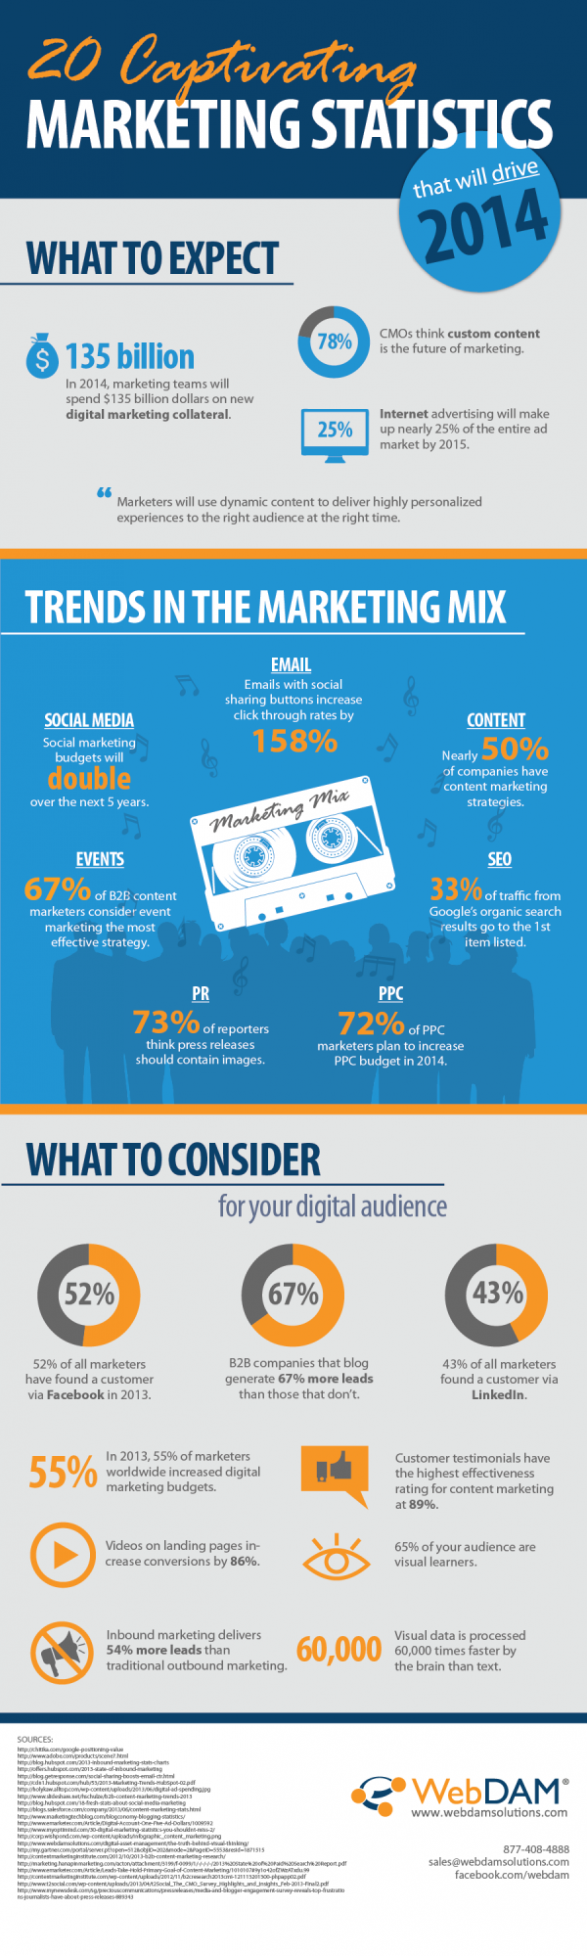 20 Marketing Statistics That Will Drive 2014